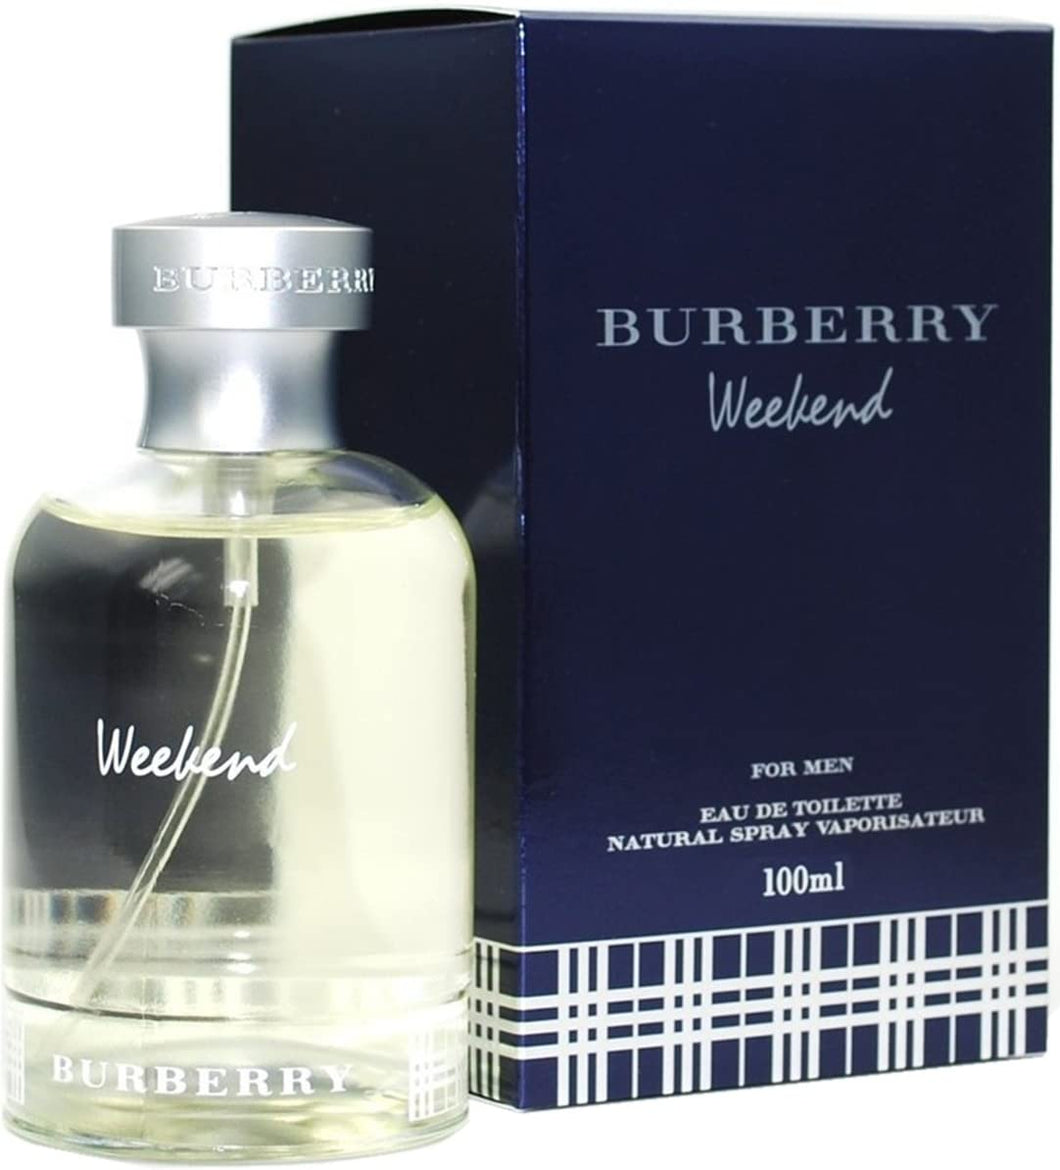 BURBERRY WEEKEND FOR MEN EDT SPRAY 博柏利 週末男性淡香水